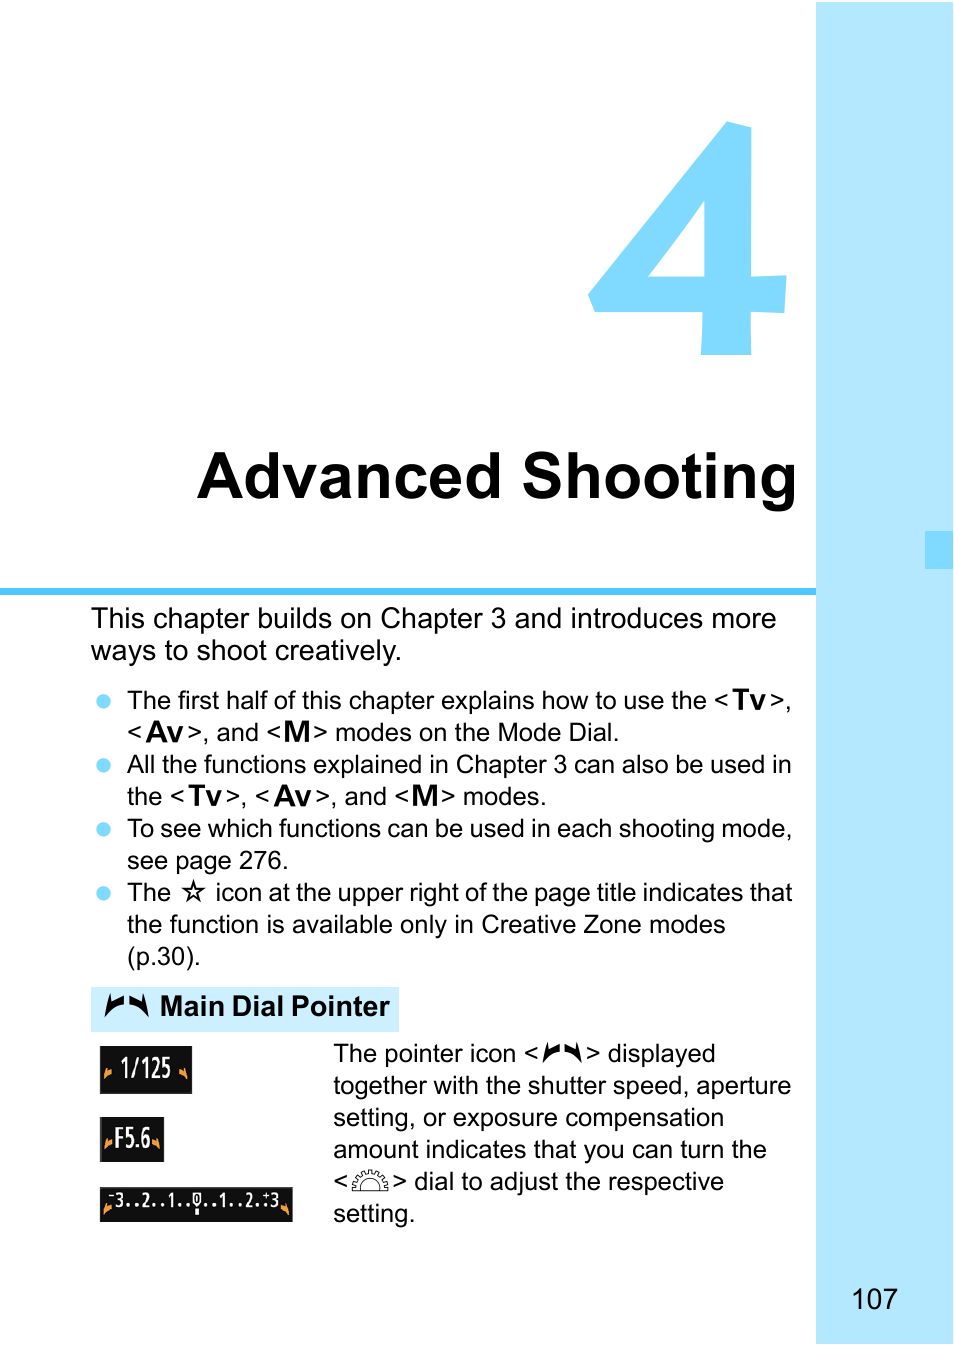 Advanced shooting   Canon EOS 1300D User Manual   Page 107